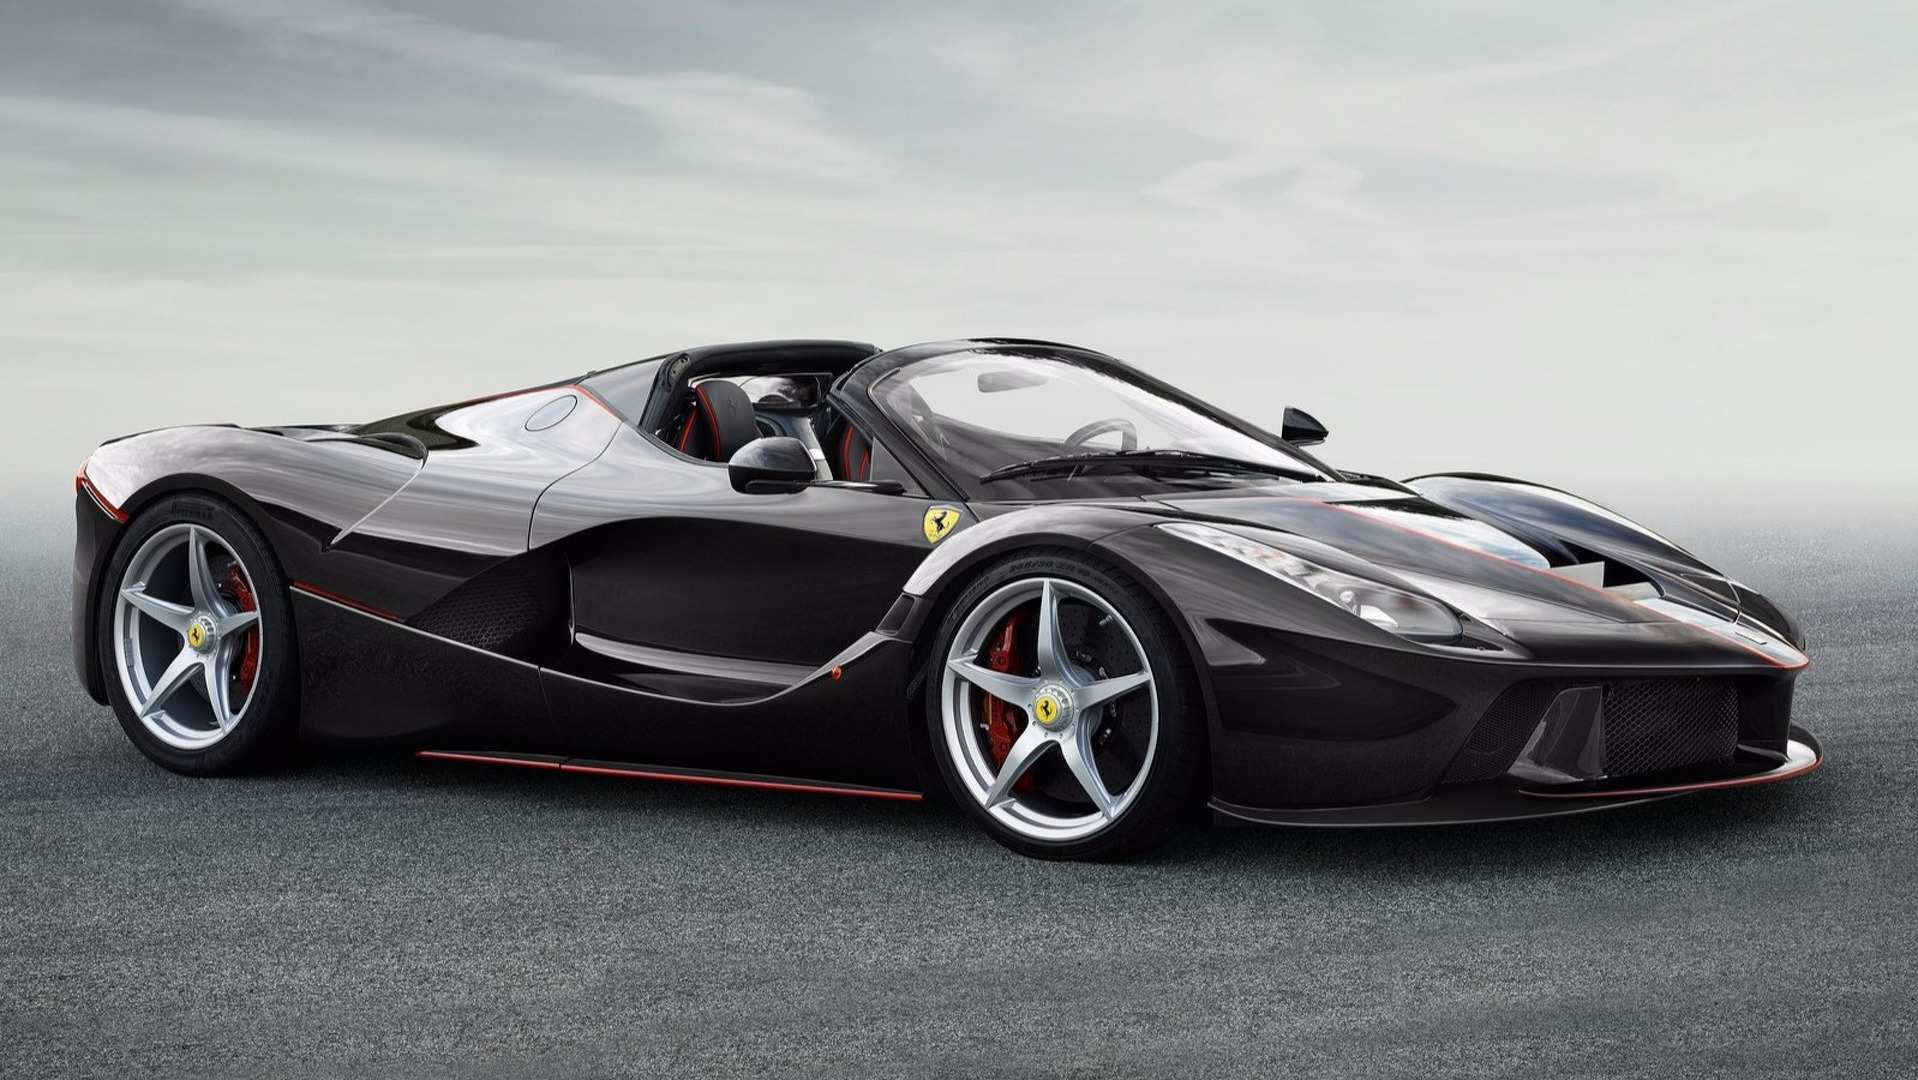 66 Gallery of 2020 Ferrari Models Exterior and Interior for 2020 Ferrari Models